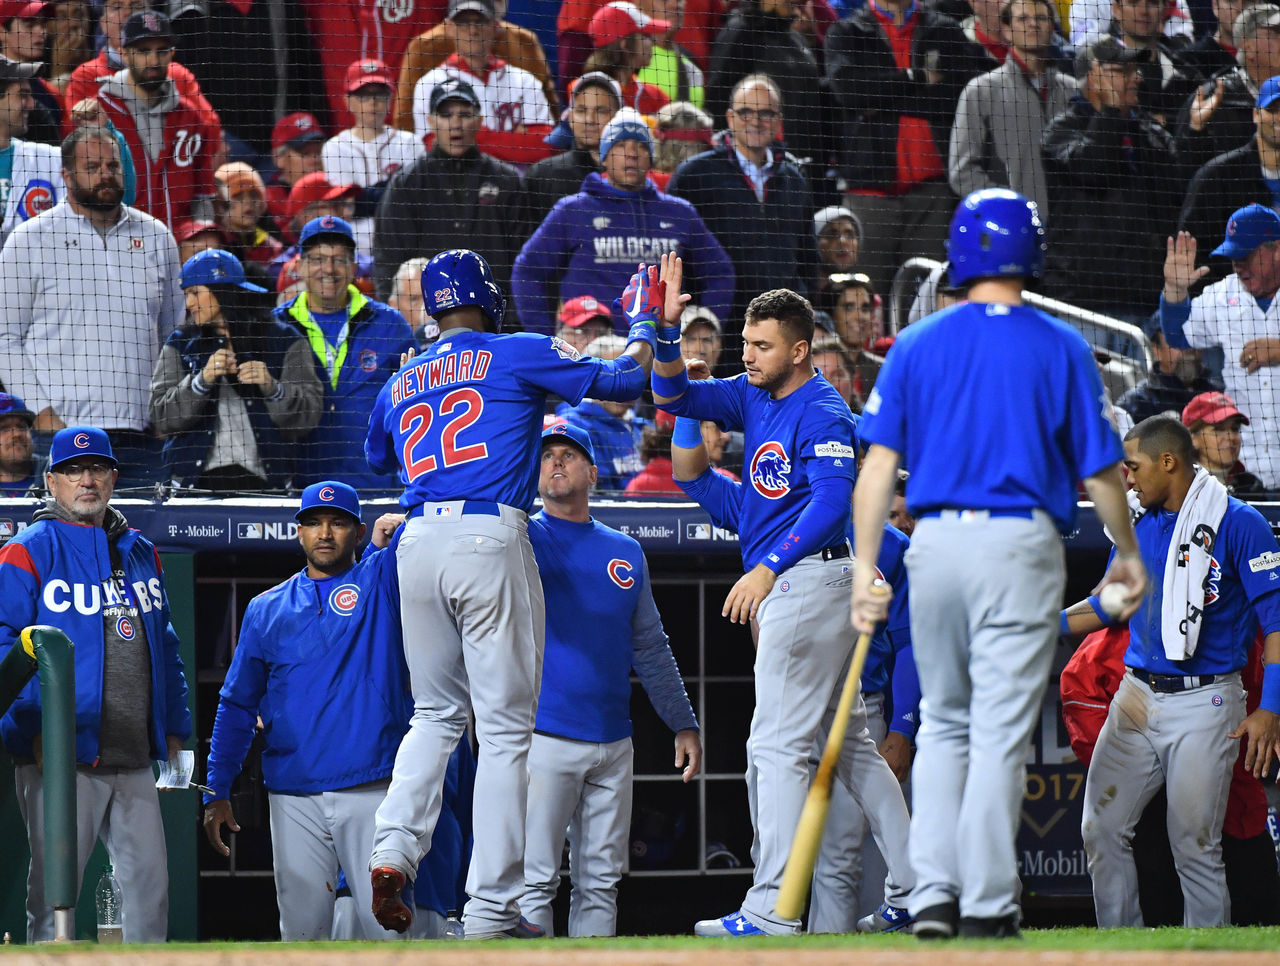 Cubs defeat Nationals to advance to NLCS | theScore.com